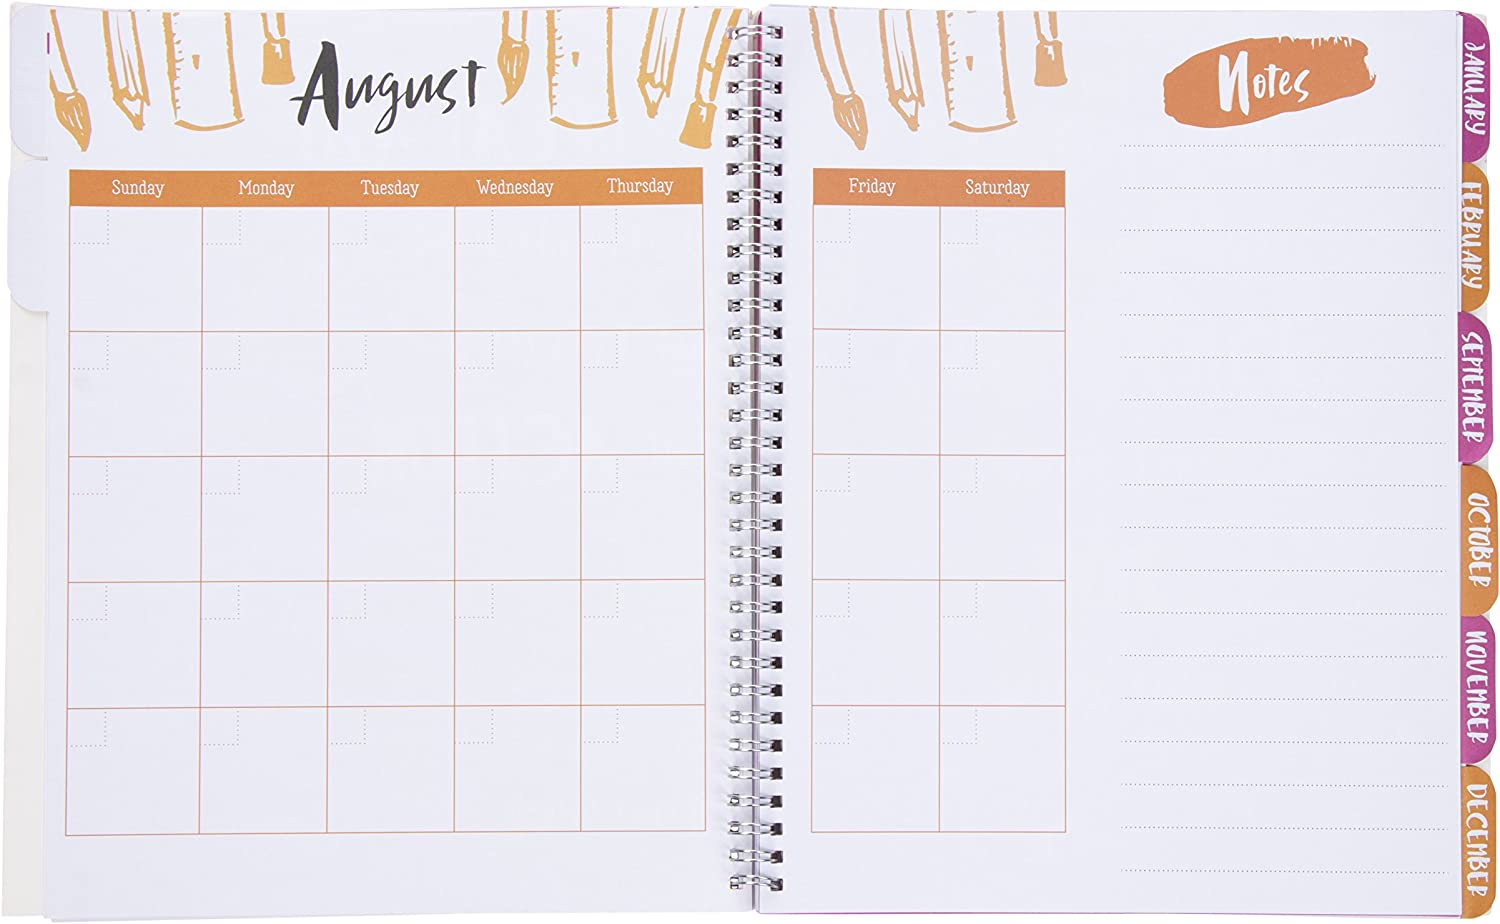 Weekly and Monthly Calendar Teacher Planner Yearly Agenda Spiral Twin-Wire Binding Schedule Organizer for School Study Academic Planner 9 x 11 Inches Lesson Plan Book